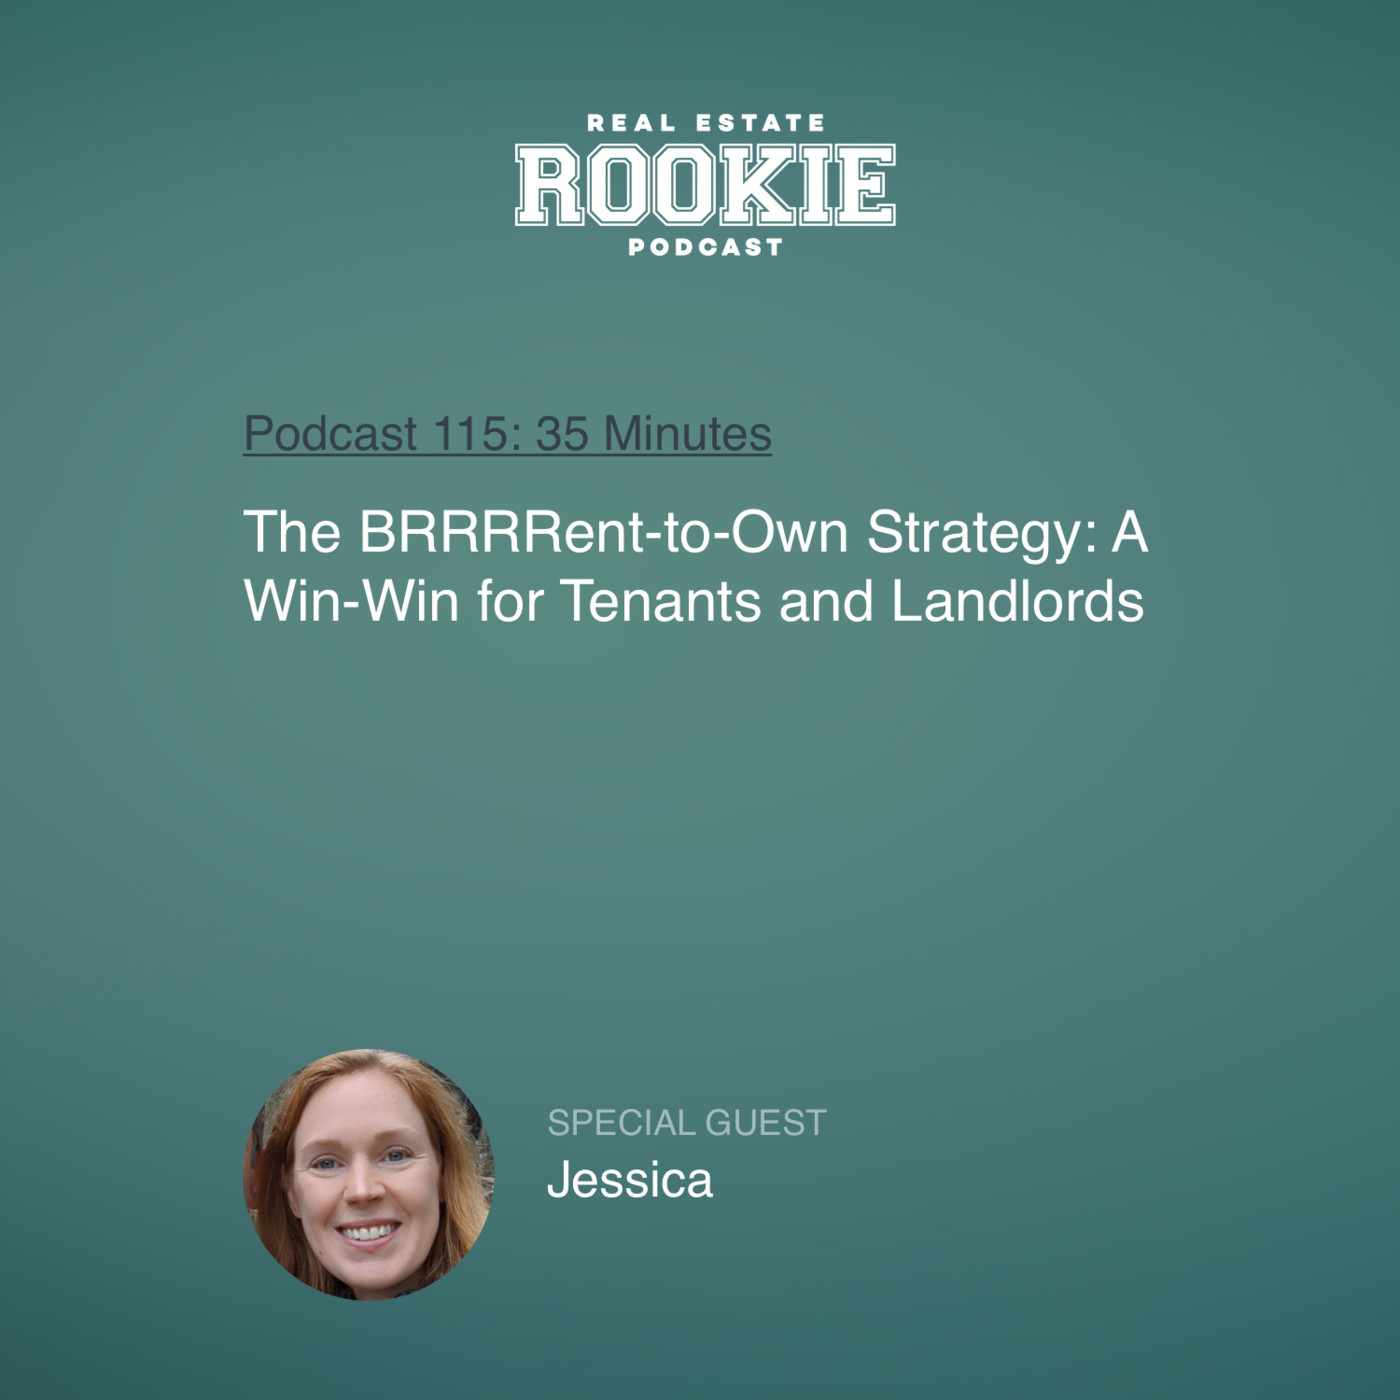 The BRRRRent-to-Own Strategy: A Win-Win for Tenants and Landlords